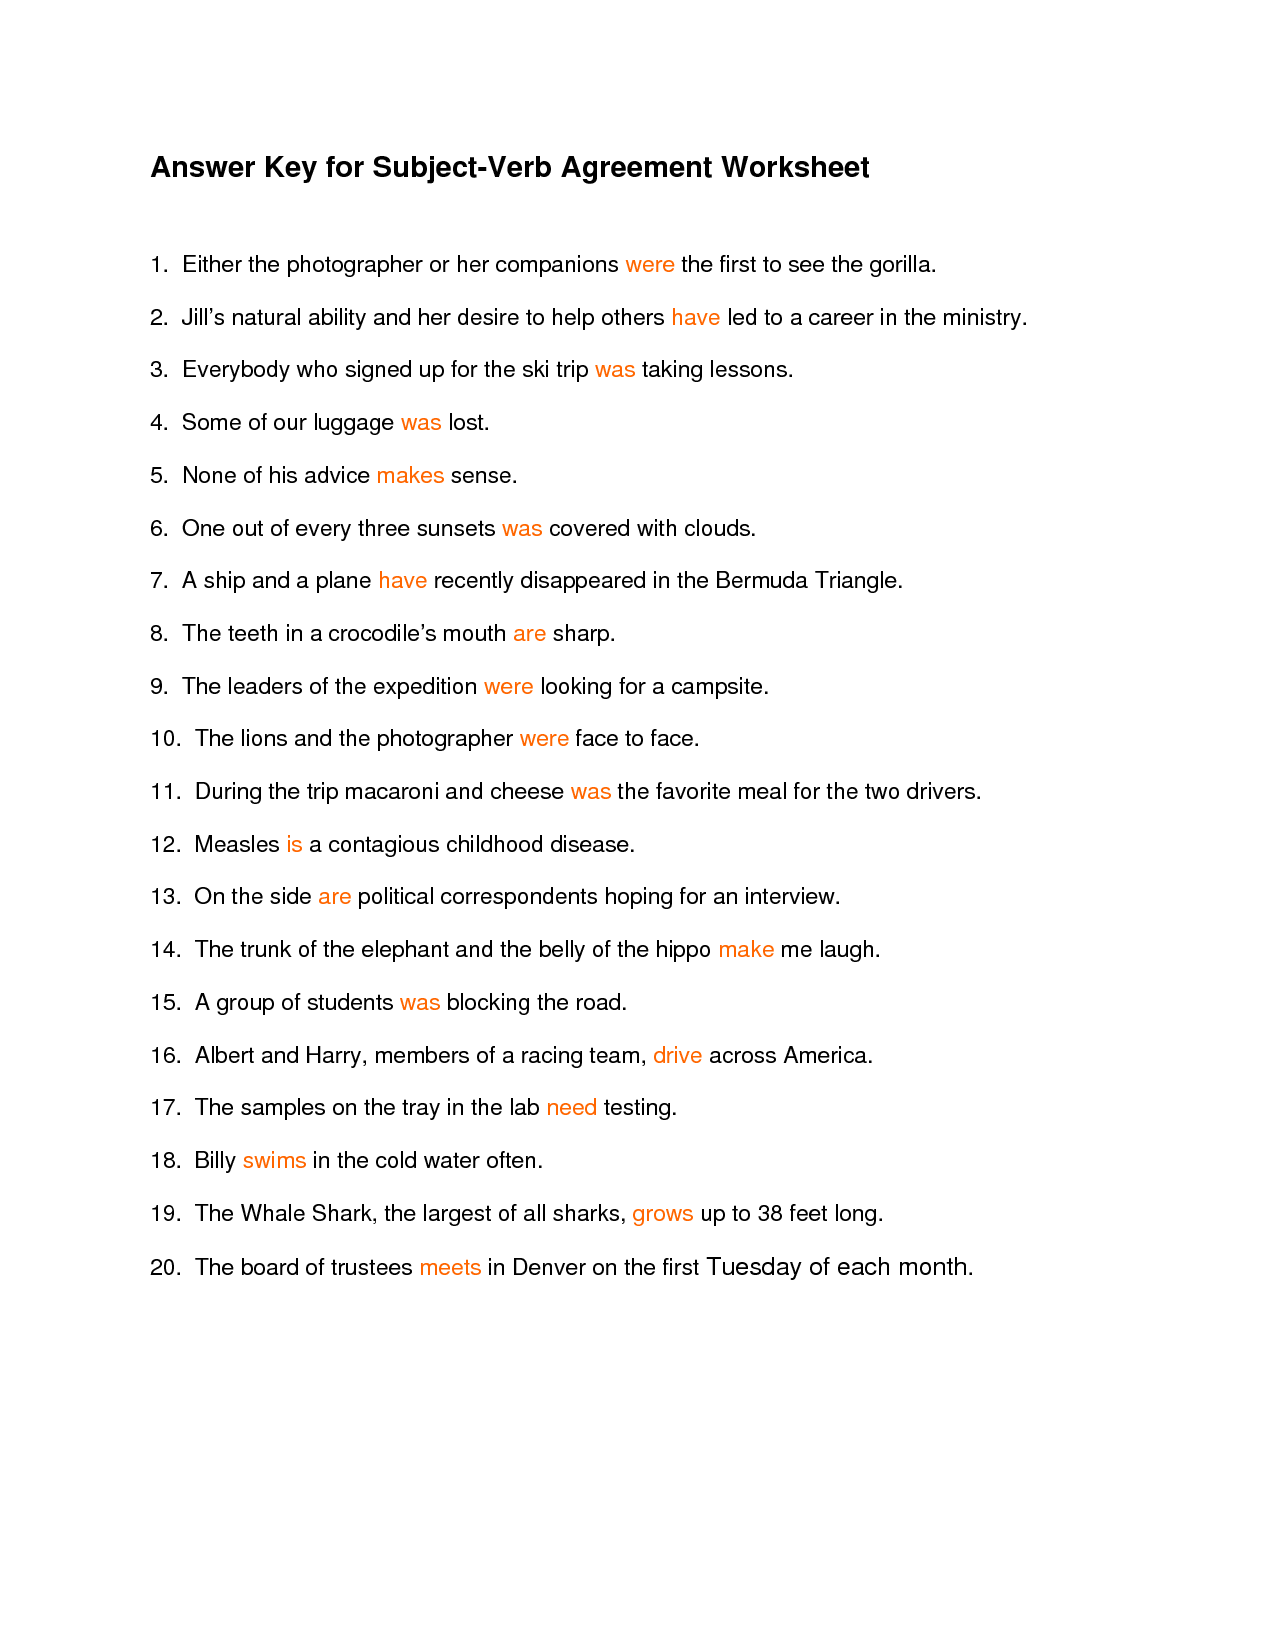 worksheet Subject Verb Agreement Worksheets With Answers towson subject verb agreement exercise 1 compromise agreements exercises university 14 best images of worksheet present simple